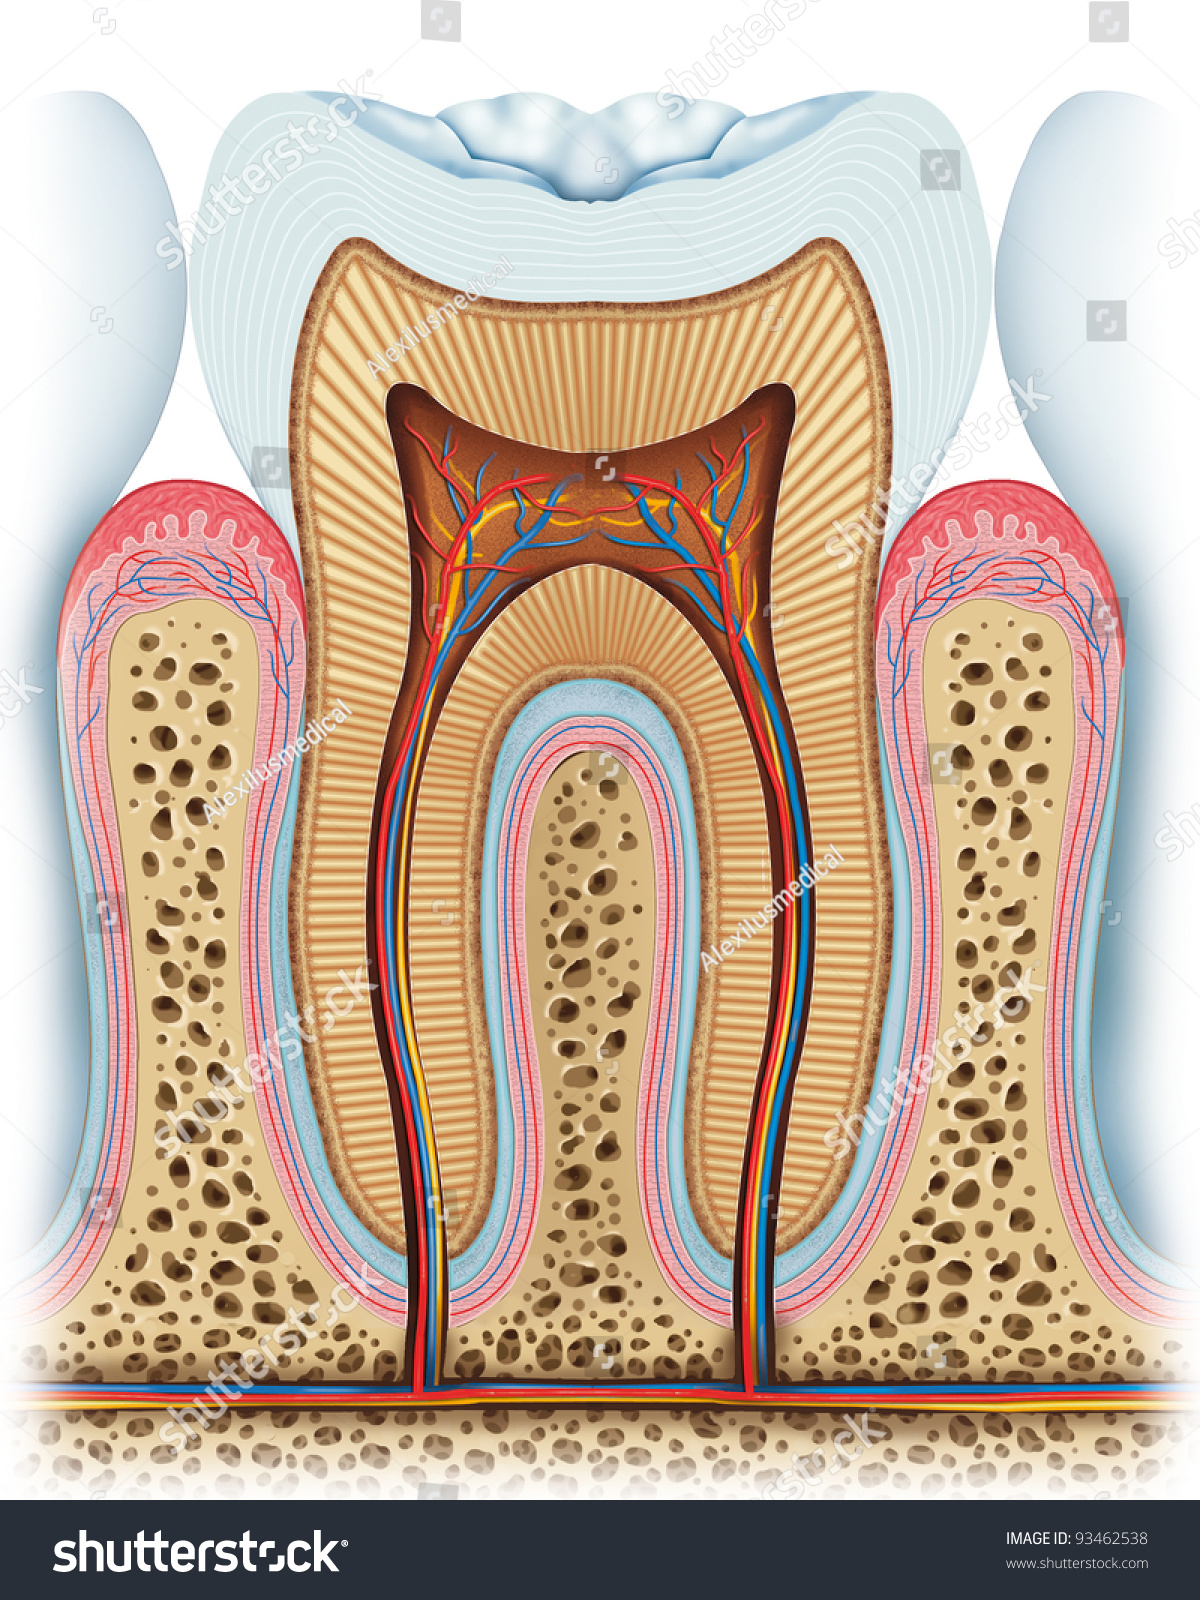 Anatomy Of The Tooth Stock Photo 93462538   Shutterstock